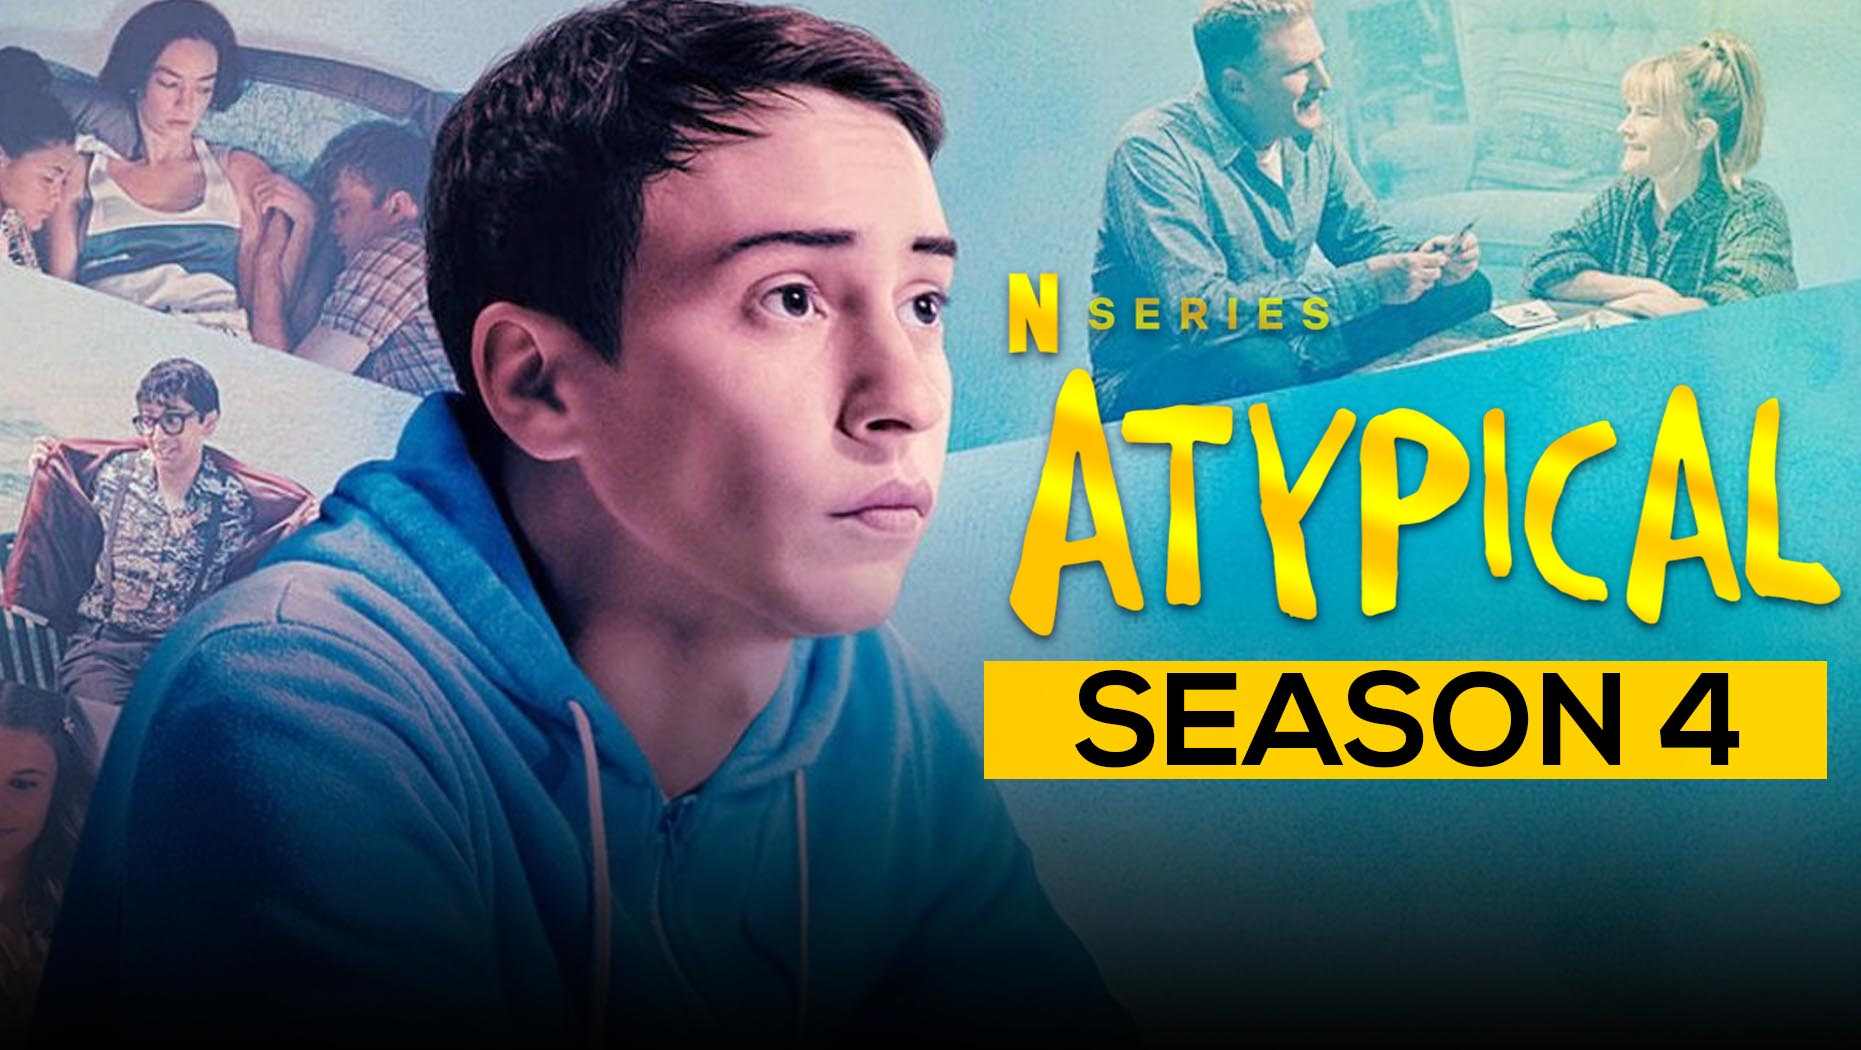 Atypical Season 4 Review